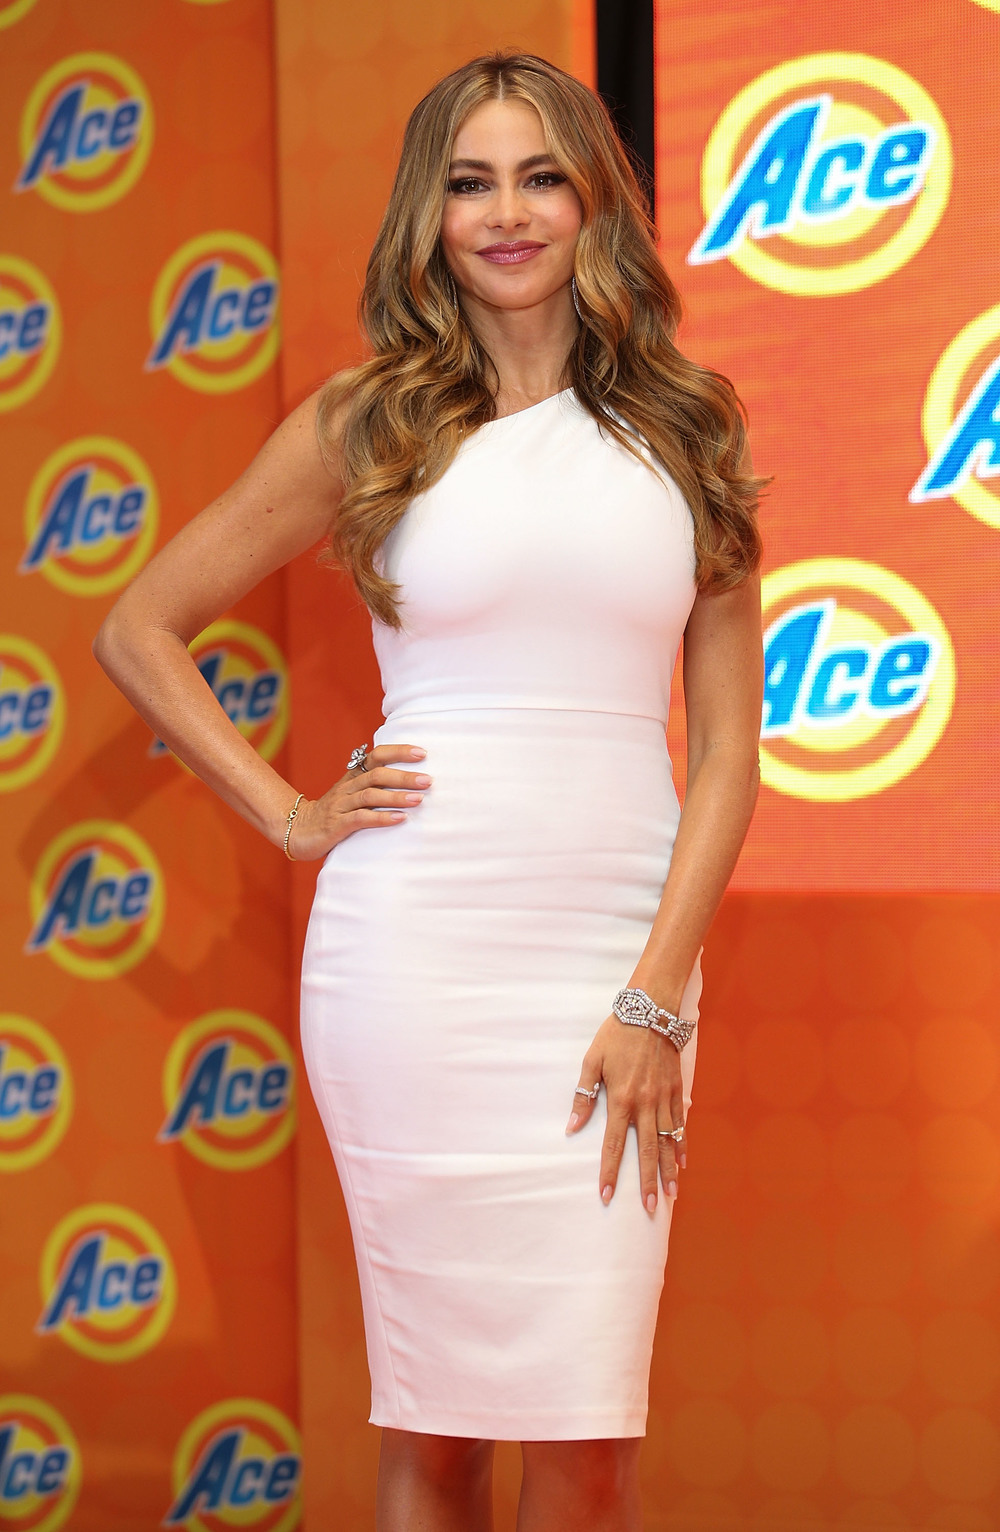 Sofia Vergara_Dana Assymetric Dress_6.26.jpg